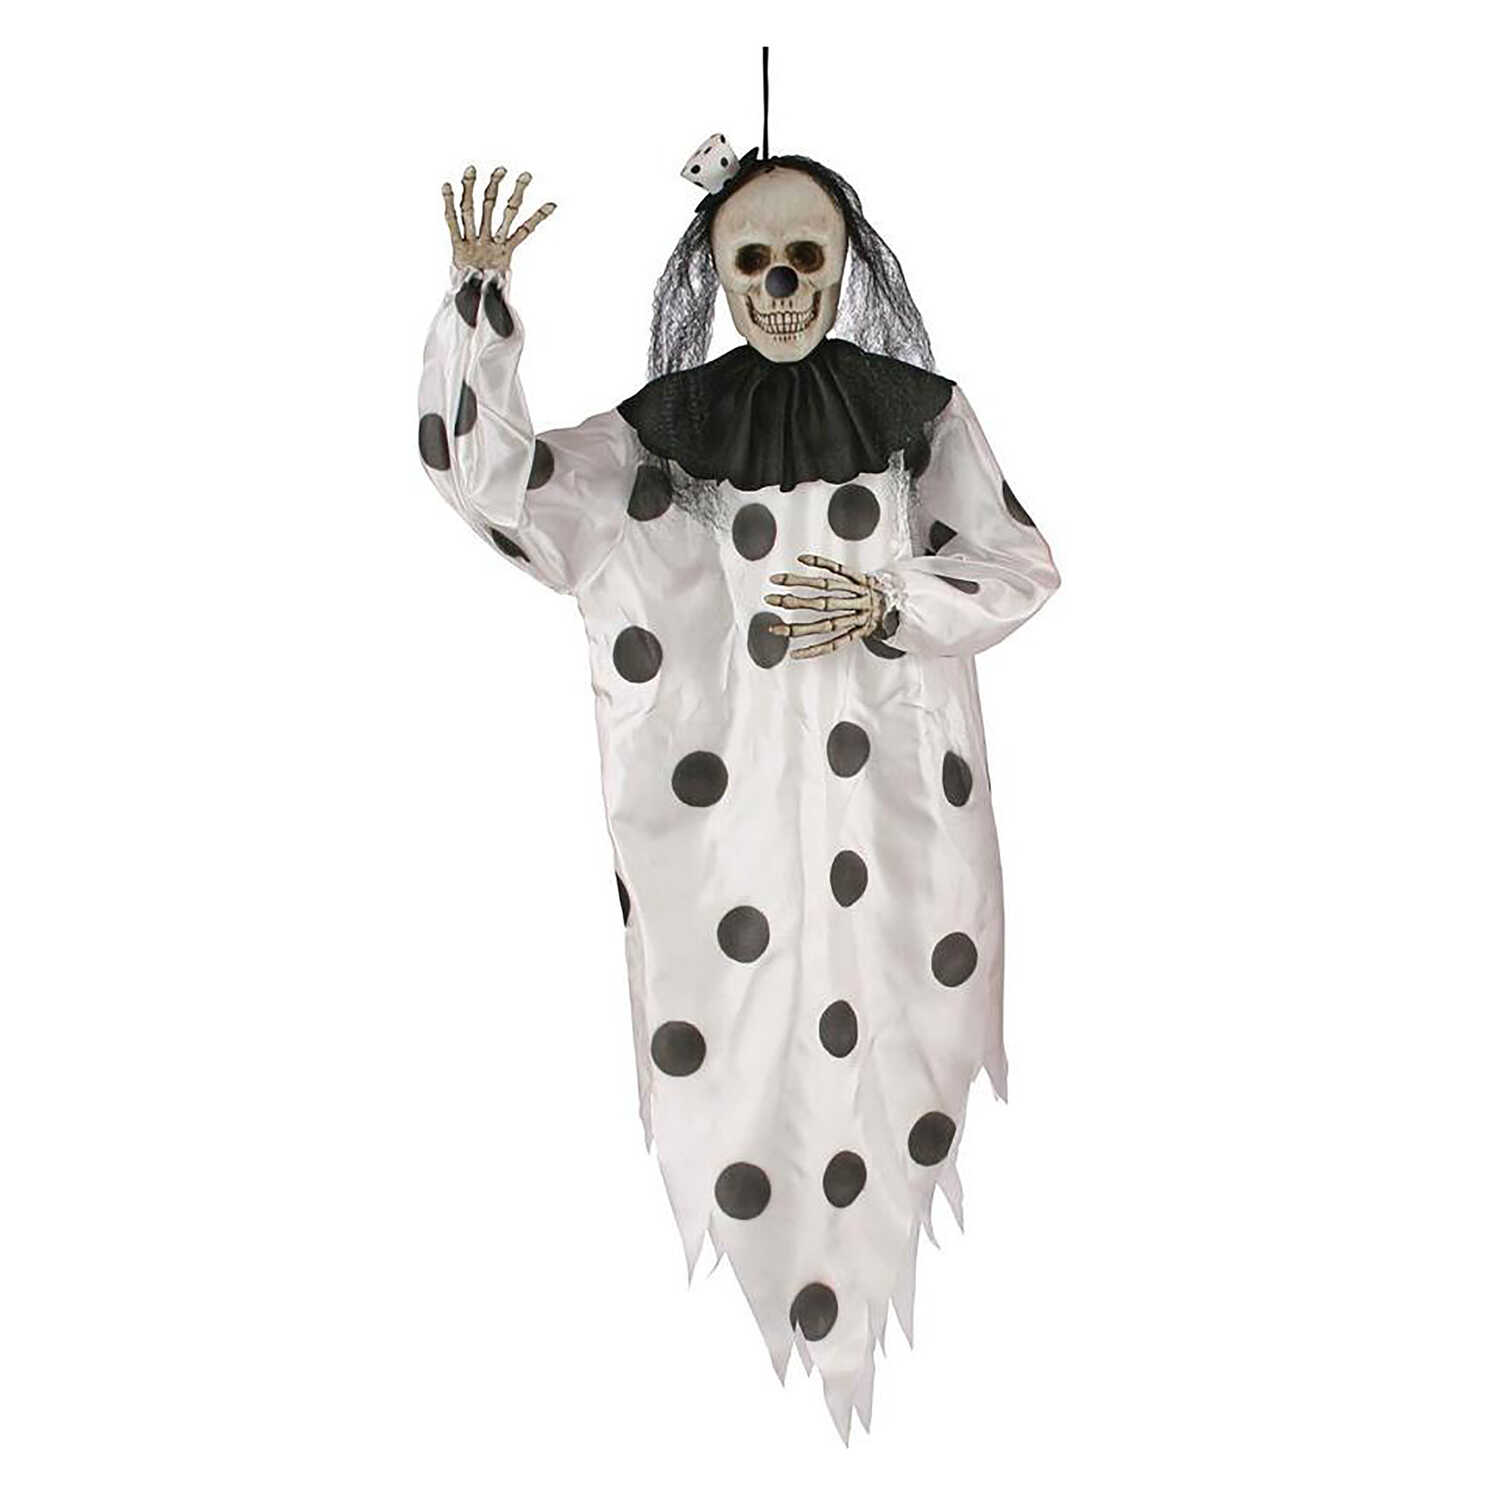 Fun World  Hanging Skeleton Clown  36 in. H x 10 in. W x 5 in. L 1 pk Halloween Decoration